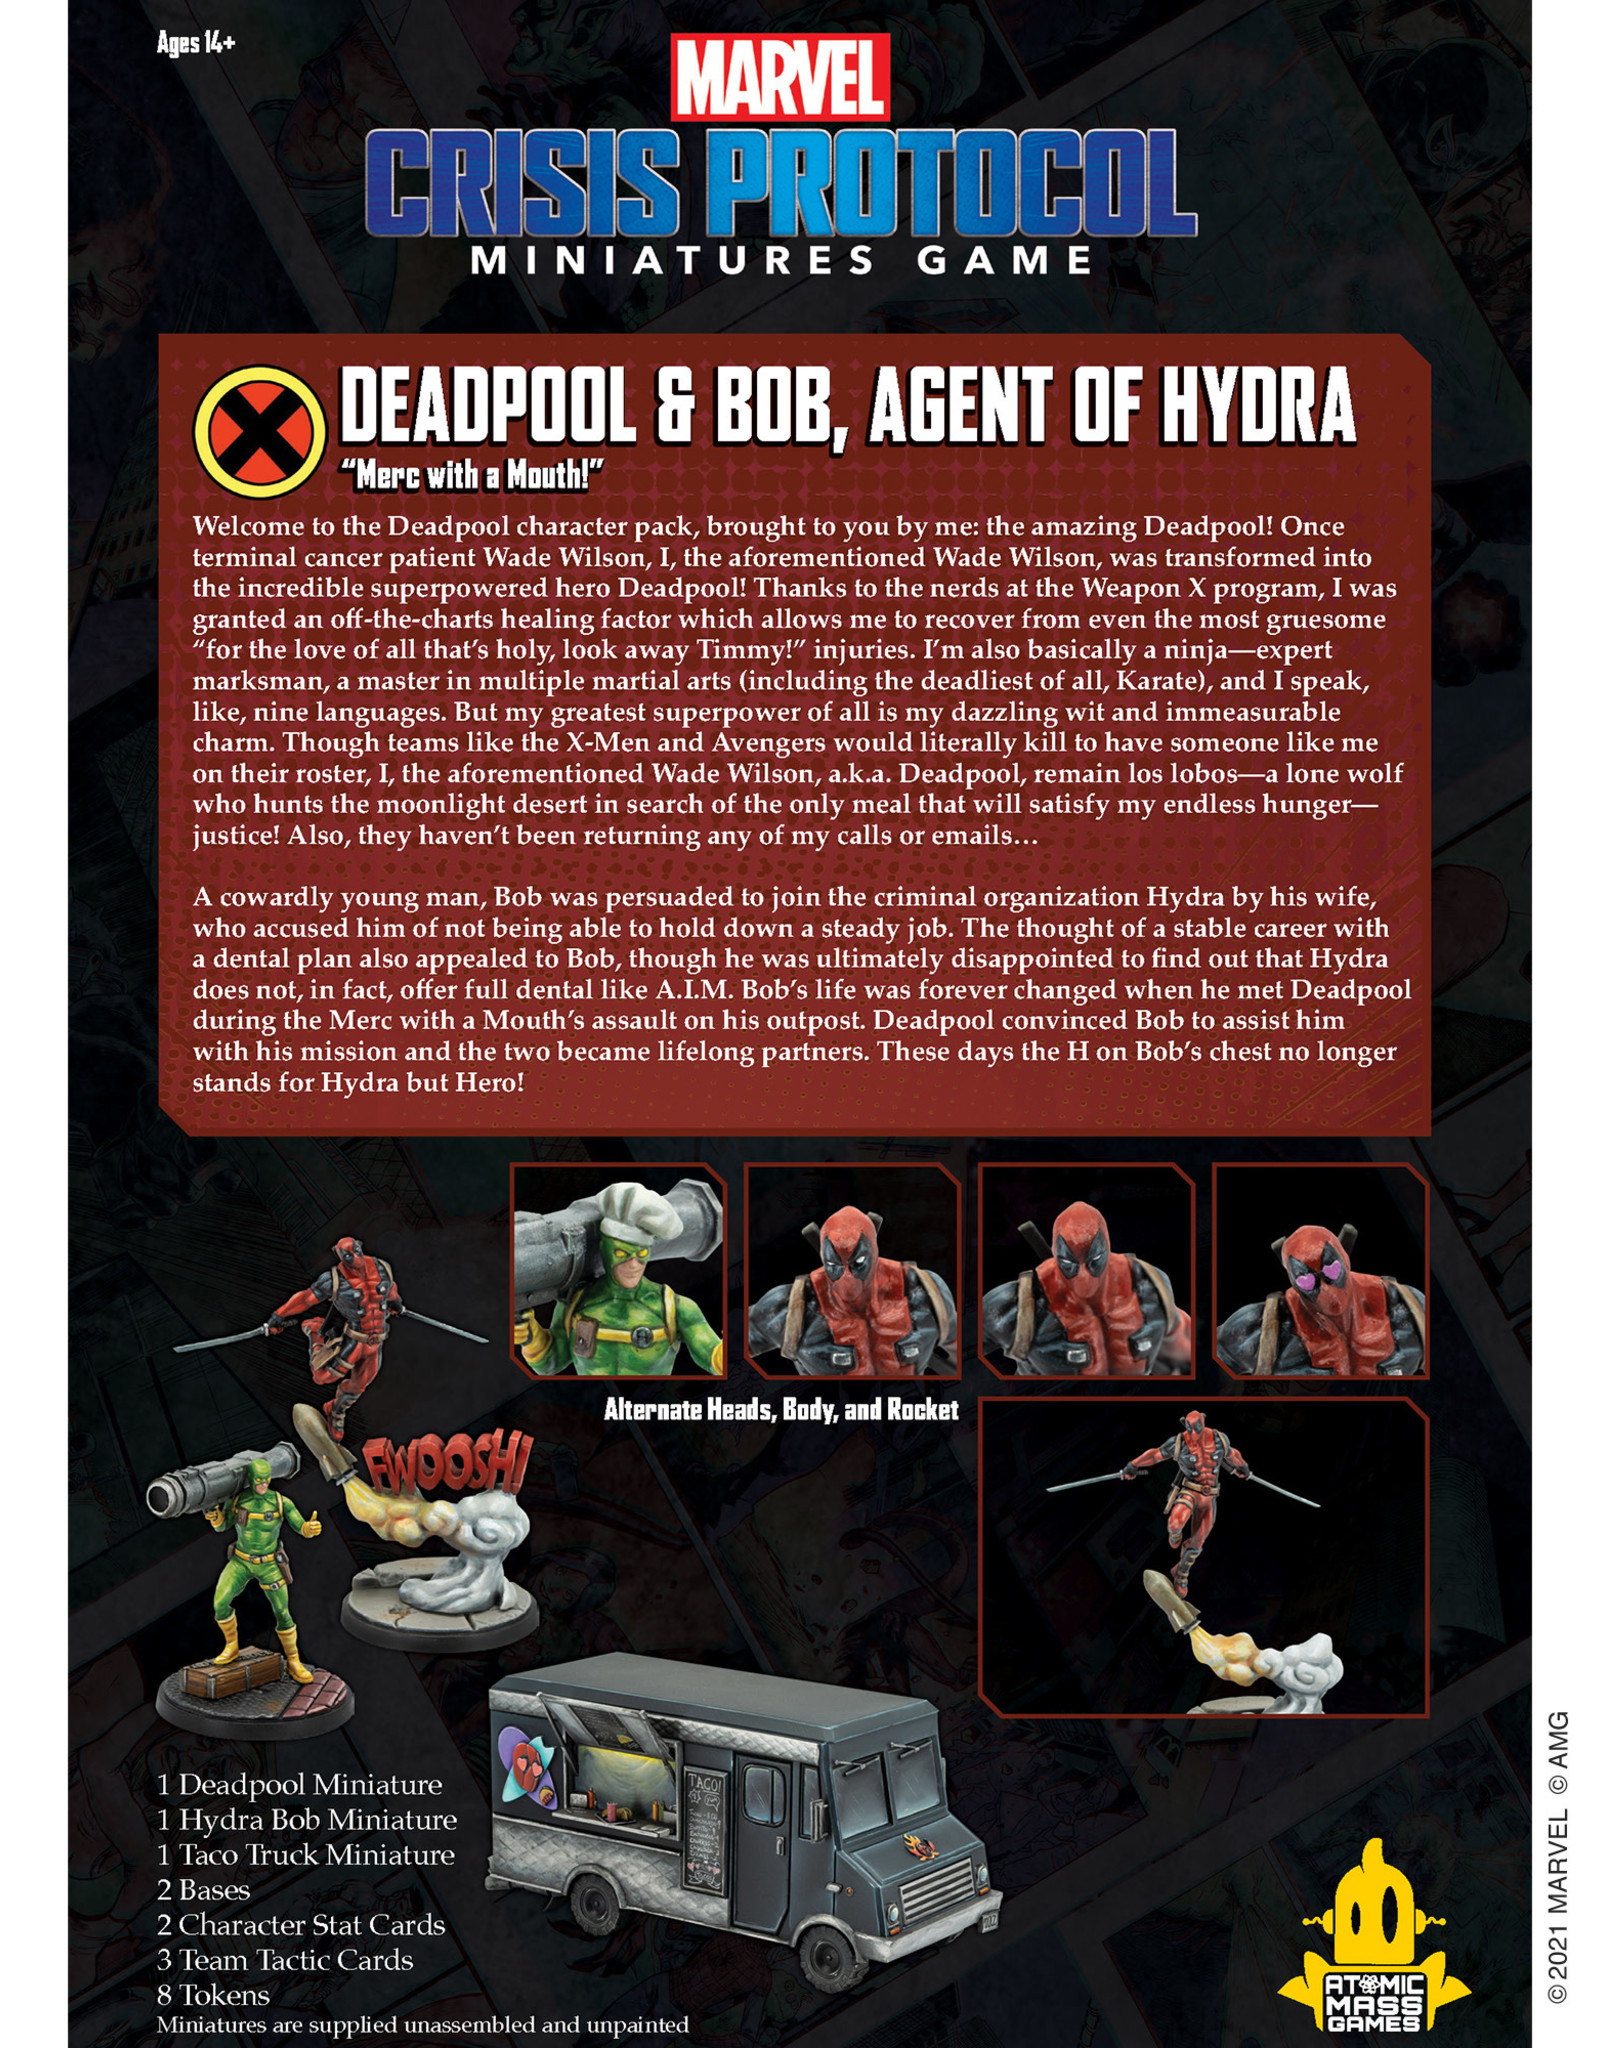 Atomic Mass Marvel Crisis Protocol: Deadpool & Bob, Agent of Hydra Character Pack